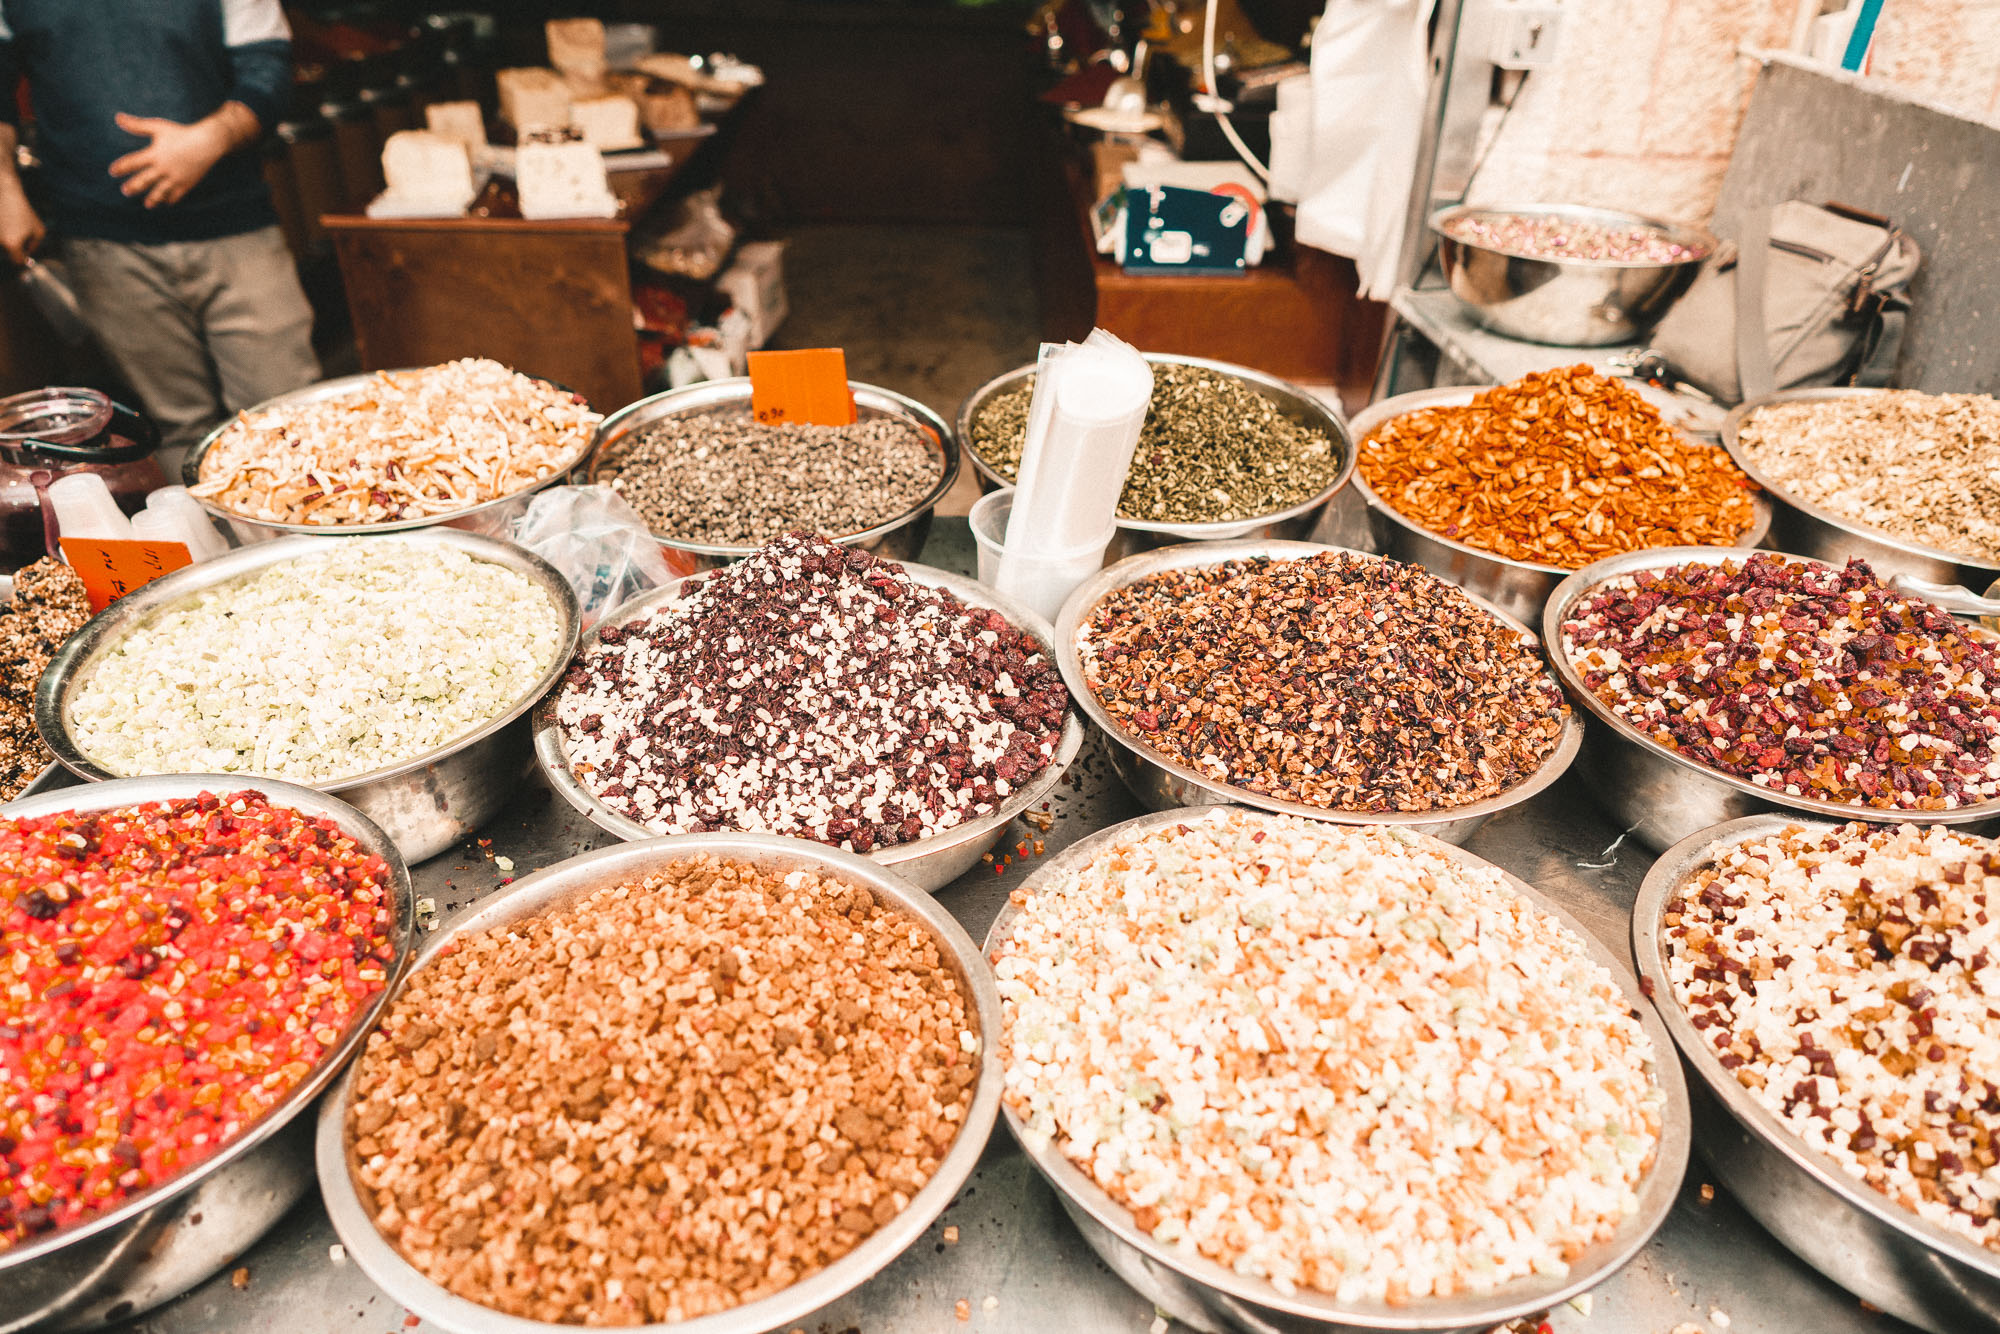 Nuts and dried fruit at Mahane Yehuda market in Jerusalem Israel